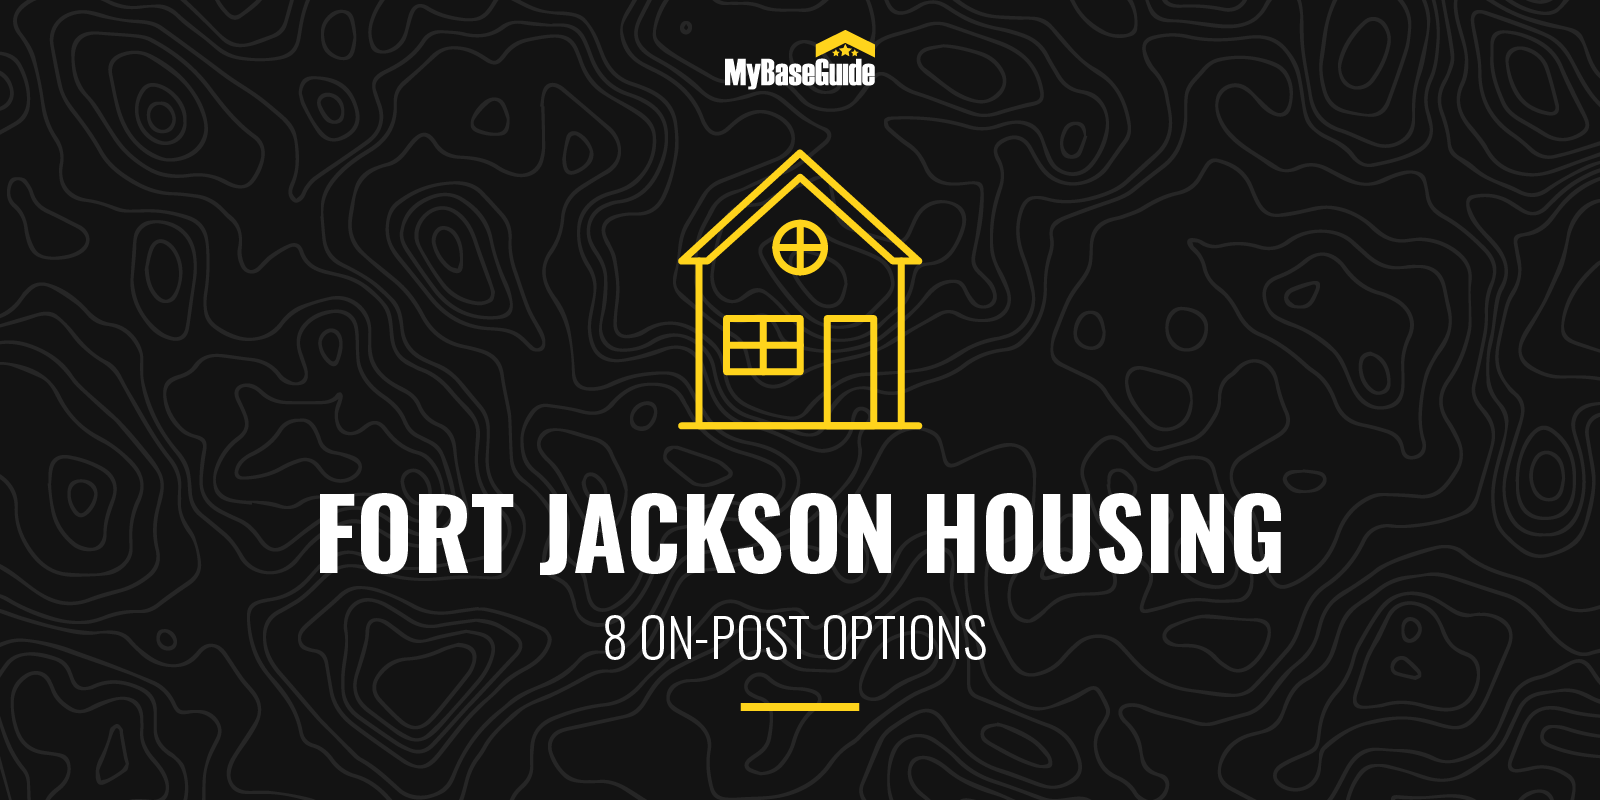 Fort Jackson Housing: 8 On Post Options